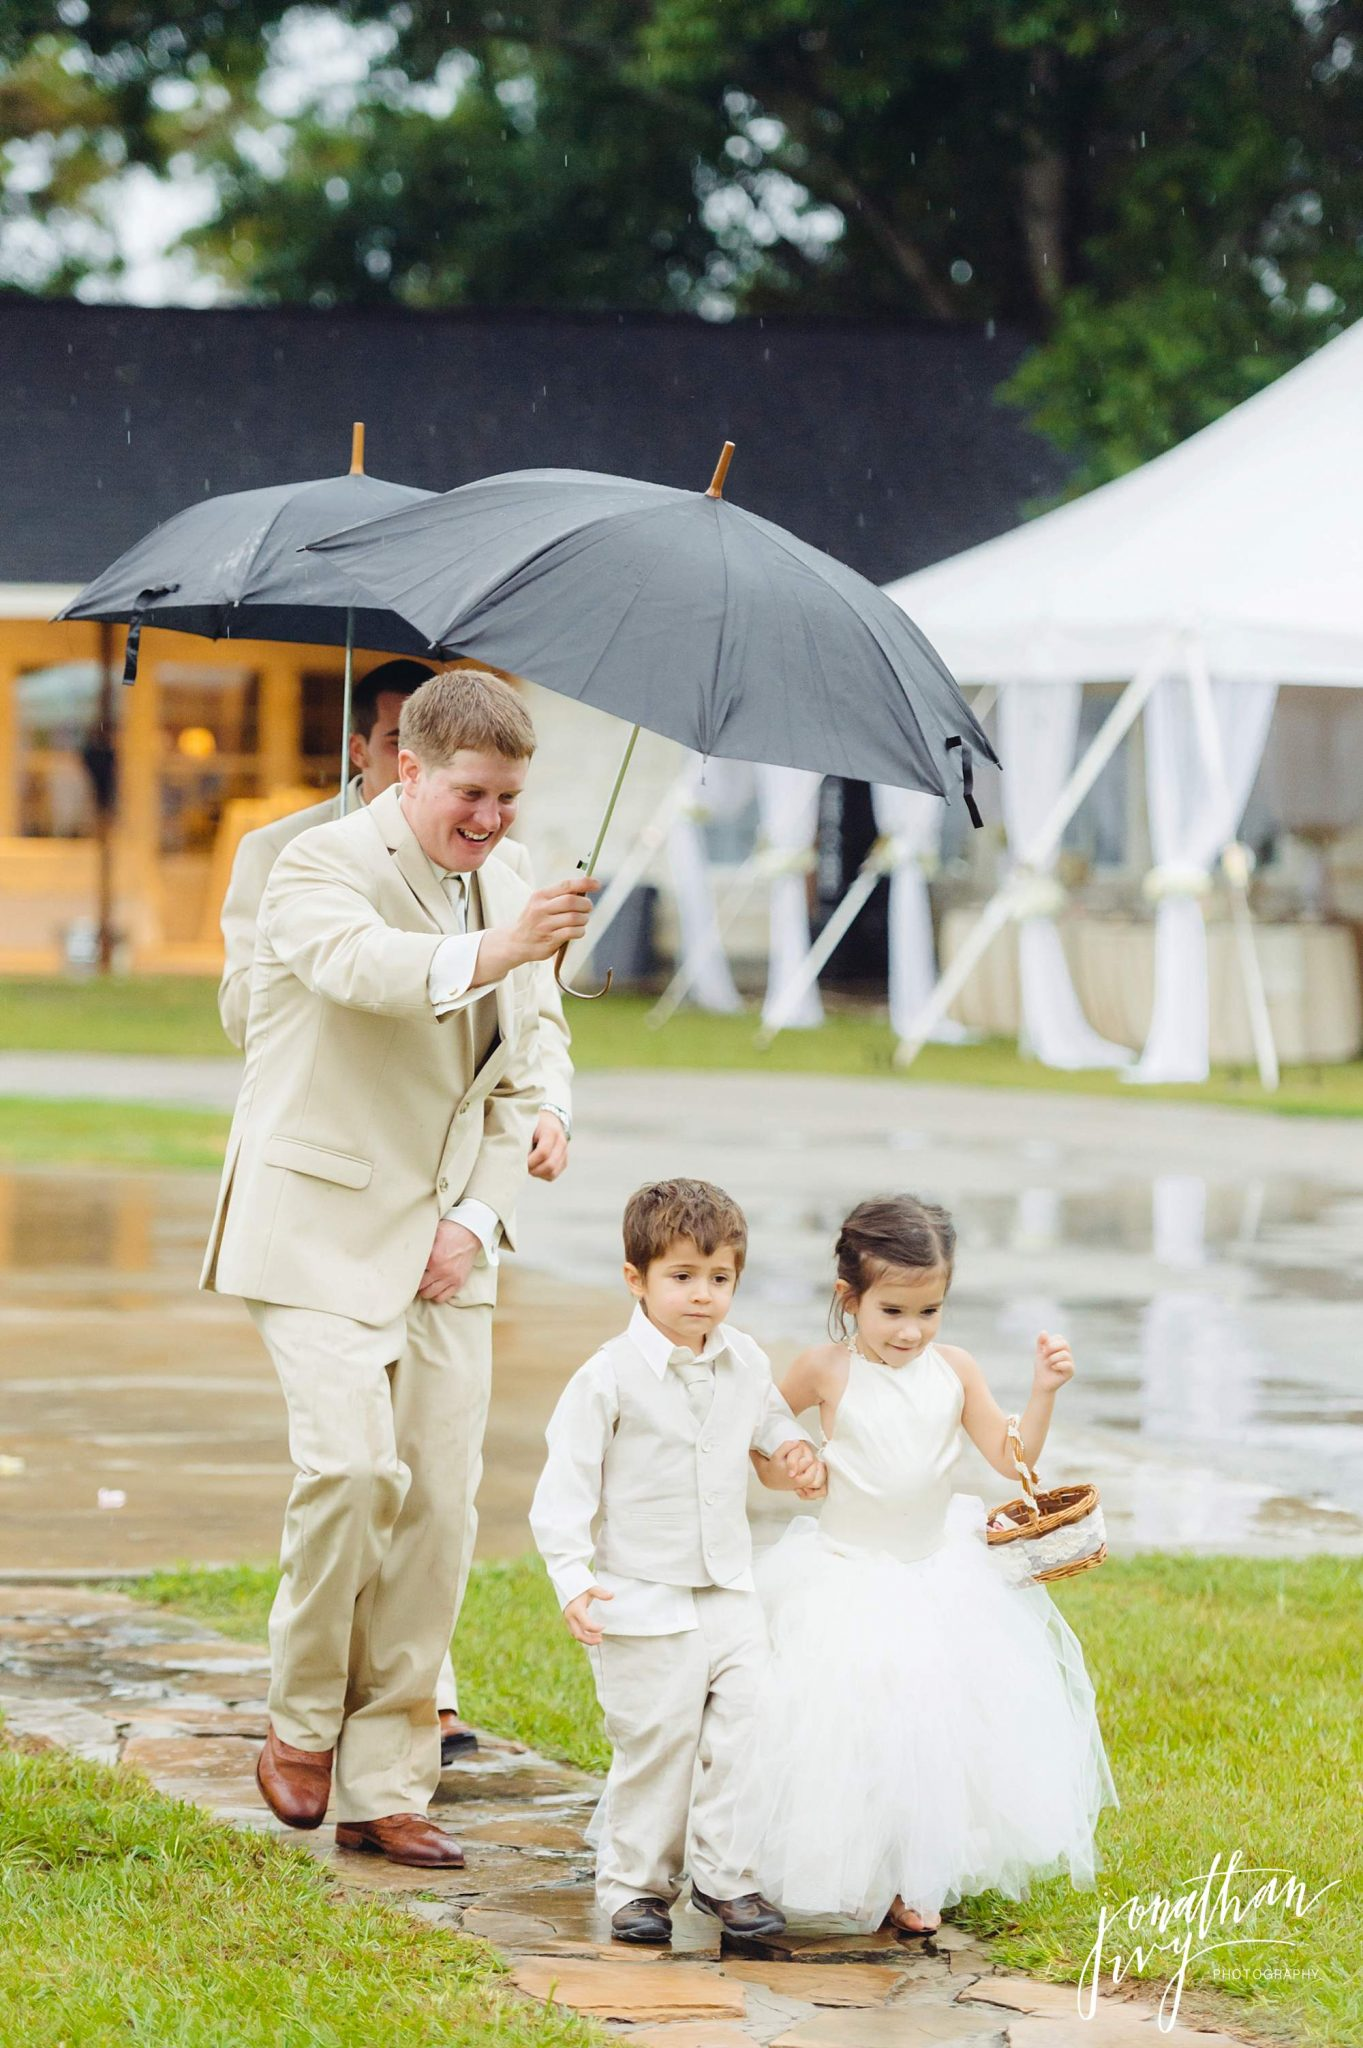 Outdoor-Tented-Wedding-in-the-Rain_0007